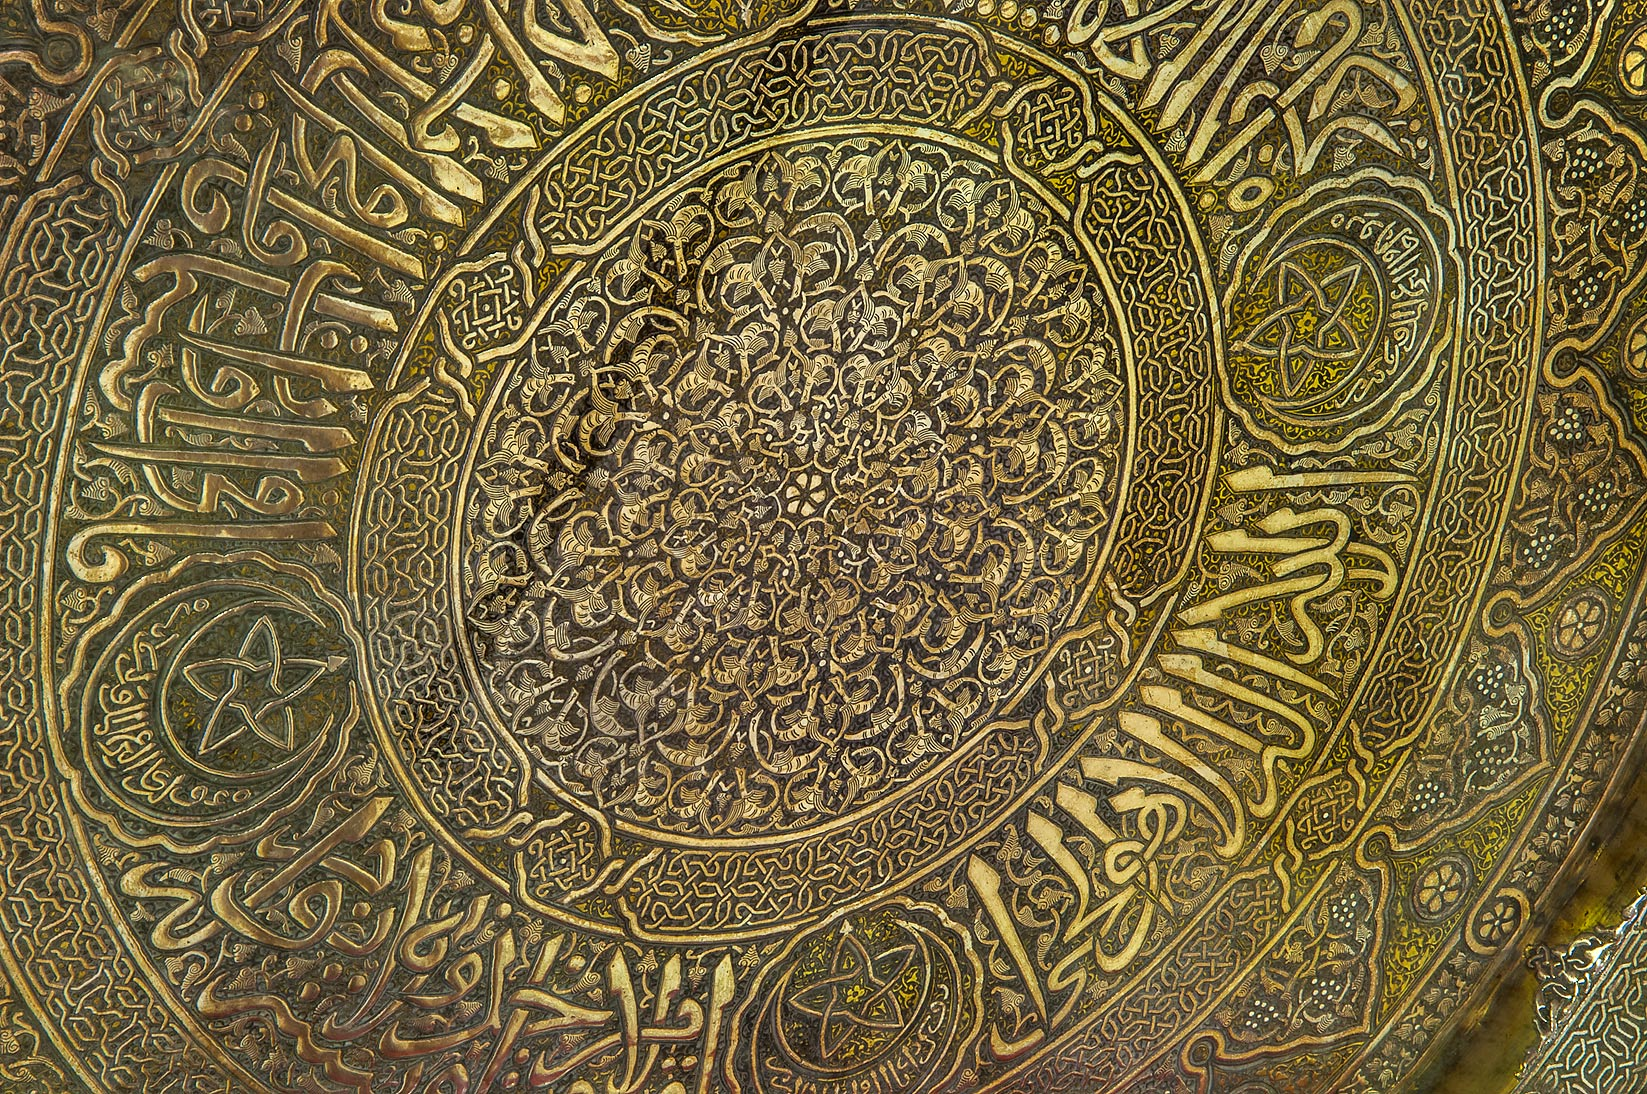 Decorated brass dish in Sheikh Faisal Bin Qassim...Museum near Al-Shahaniya. Doha, Qatar